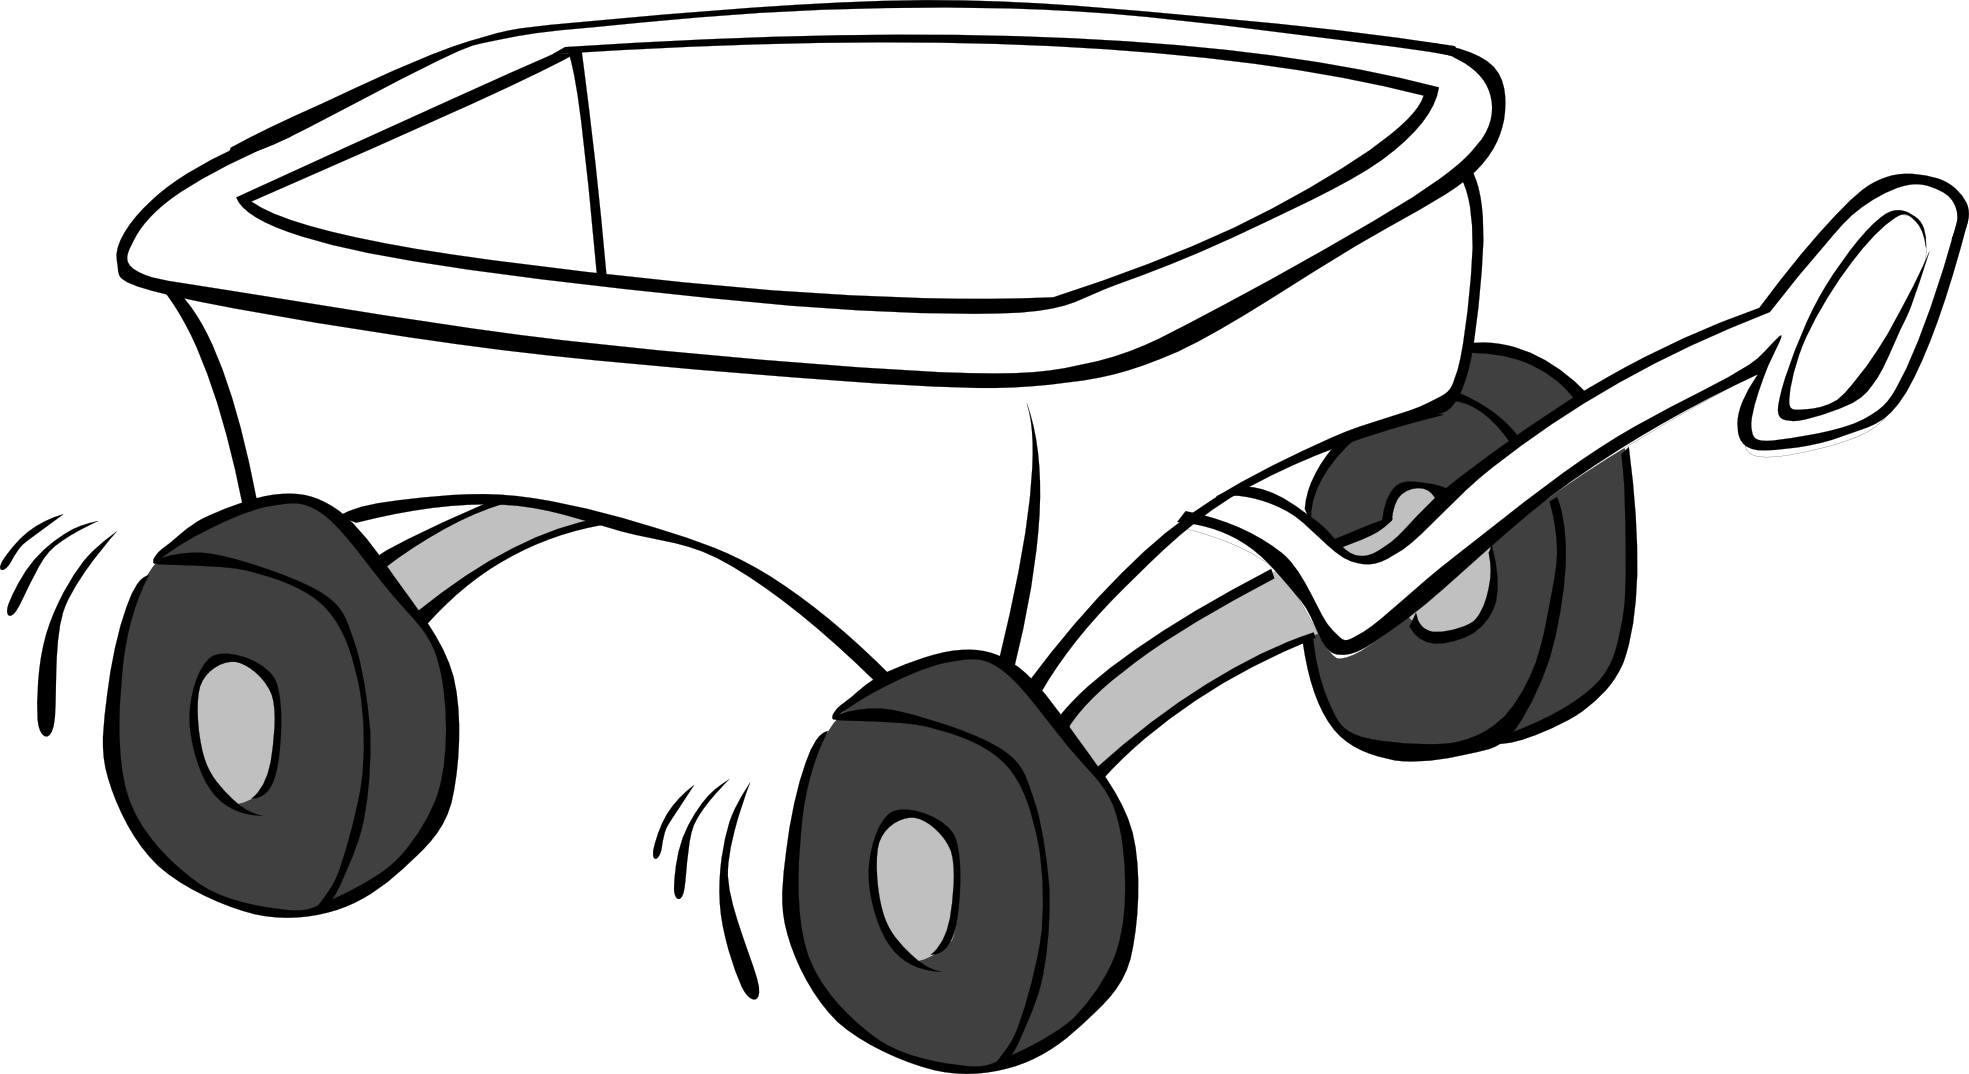 Clipart wheelbarrow money picture royalty free stock Wagon Clipart Black And White | Clipart Panda - Free Clipart Images picture royalty free stock